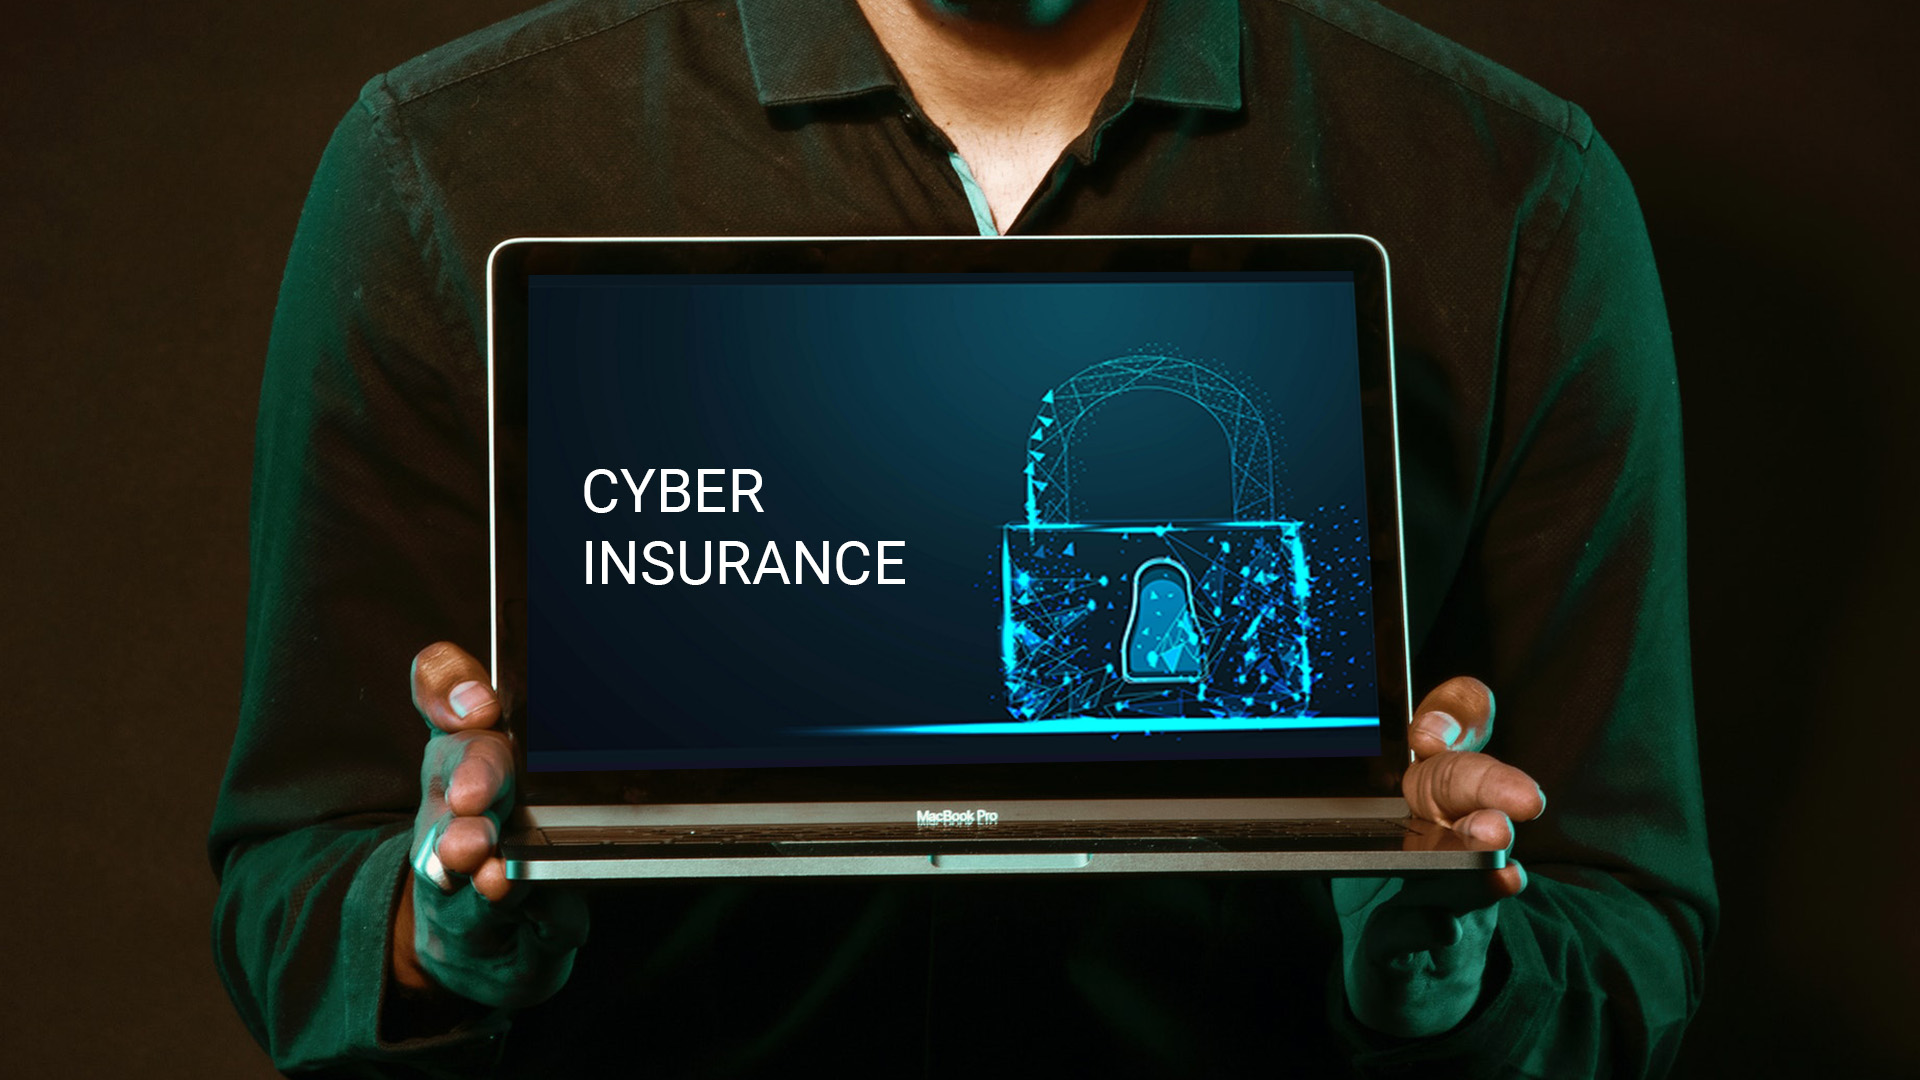 Without cyber insurance, India businesses are sitting ducks